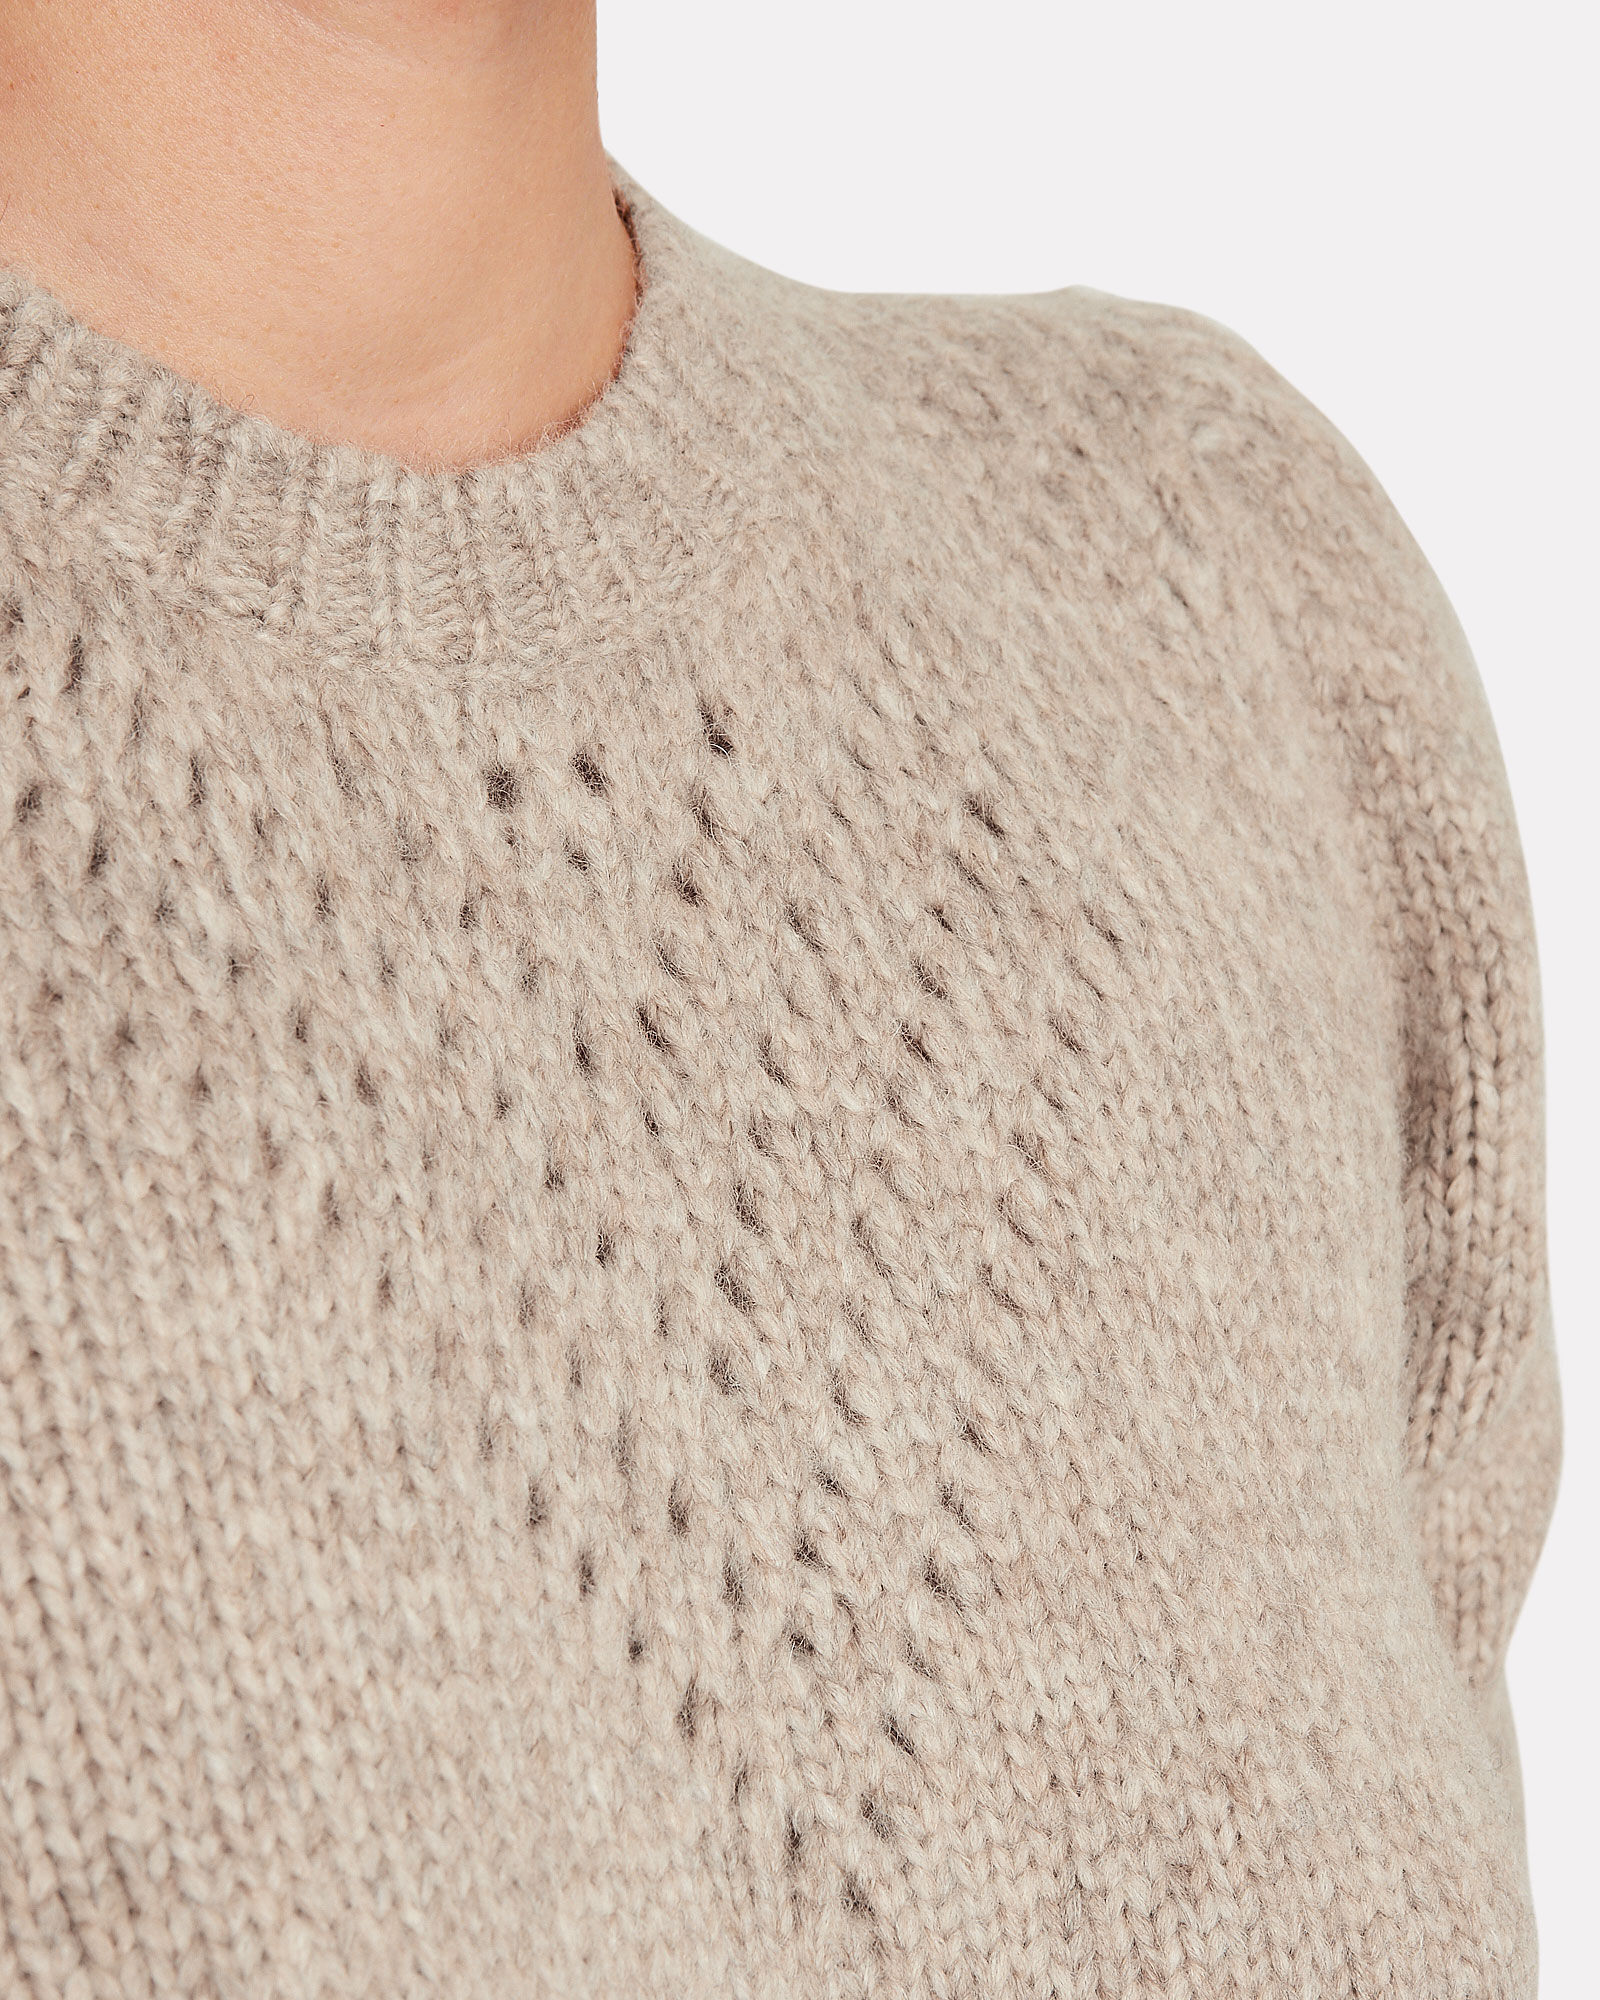 Veronique Alpaca-Wool Sweater, BROWN, hi-res